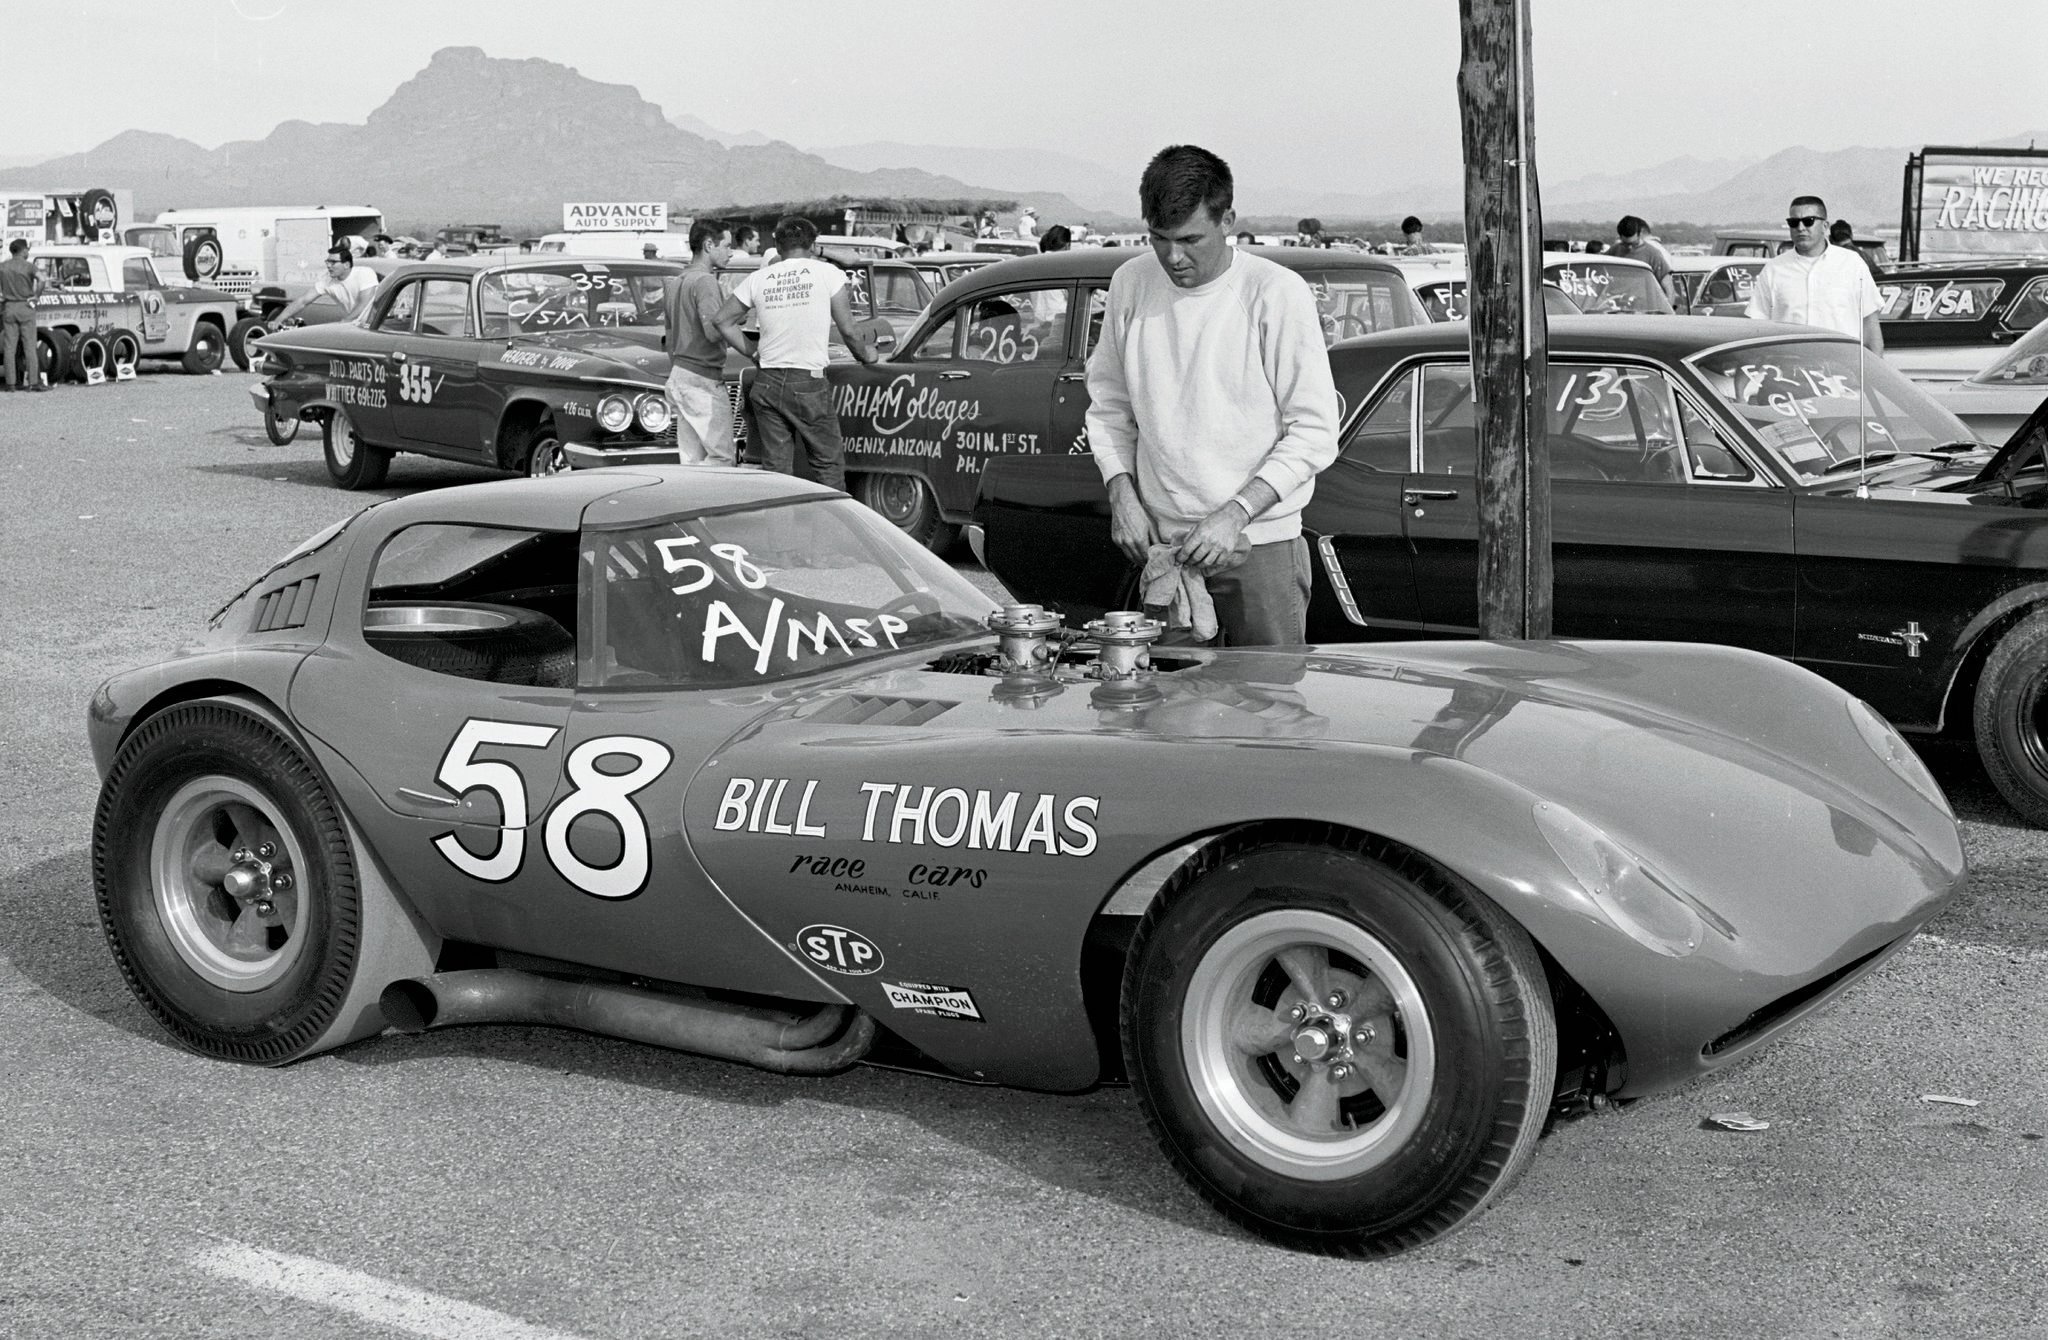 In 1965, it was still possible for a talented sporty-car driver to go drag and road racing with the same vehicle. This Chevy-powered Cheetah held both ends of AHRA's national A/Modified Sport record at 10.82/130.34 while challenging Cobras on road courses. Bill Thomas Race Cars factory driver Mike Jones later conceived and created Orange County International Raceway.